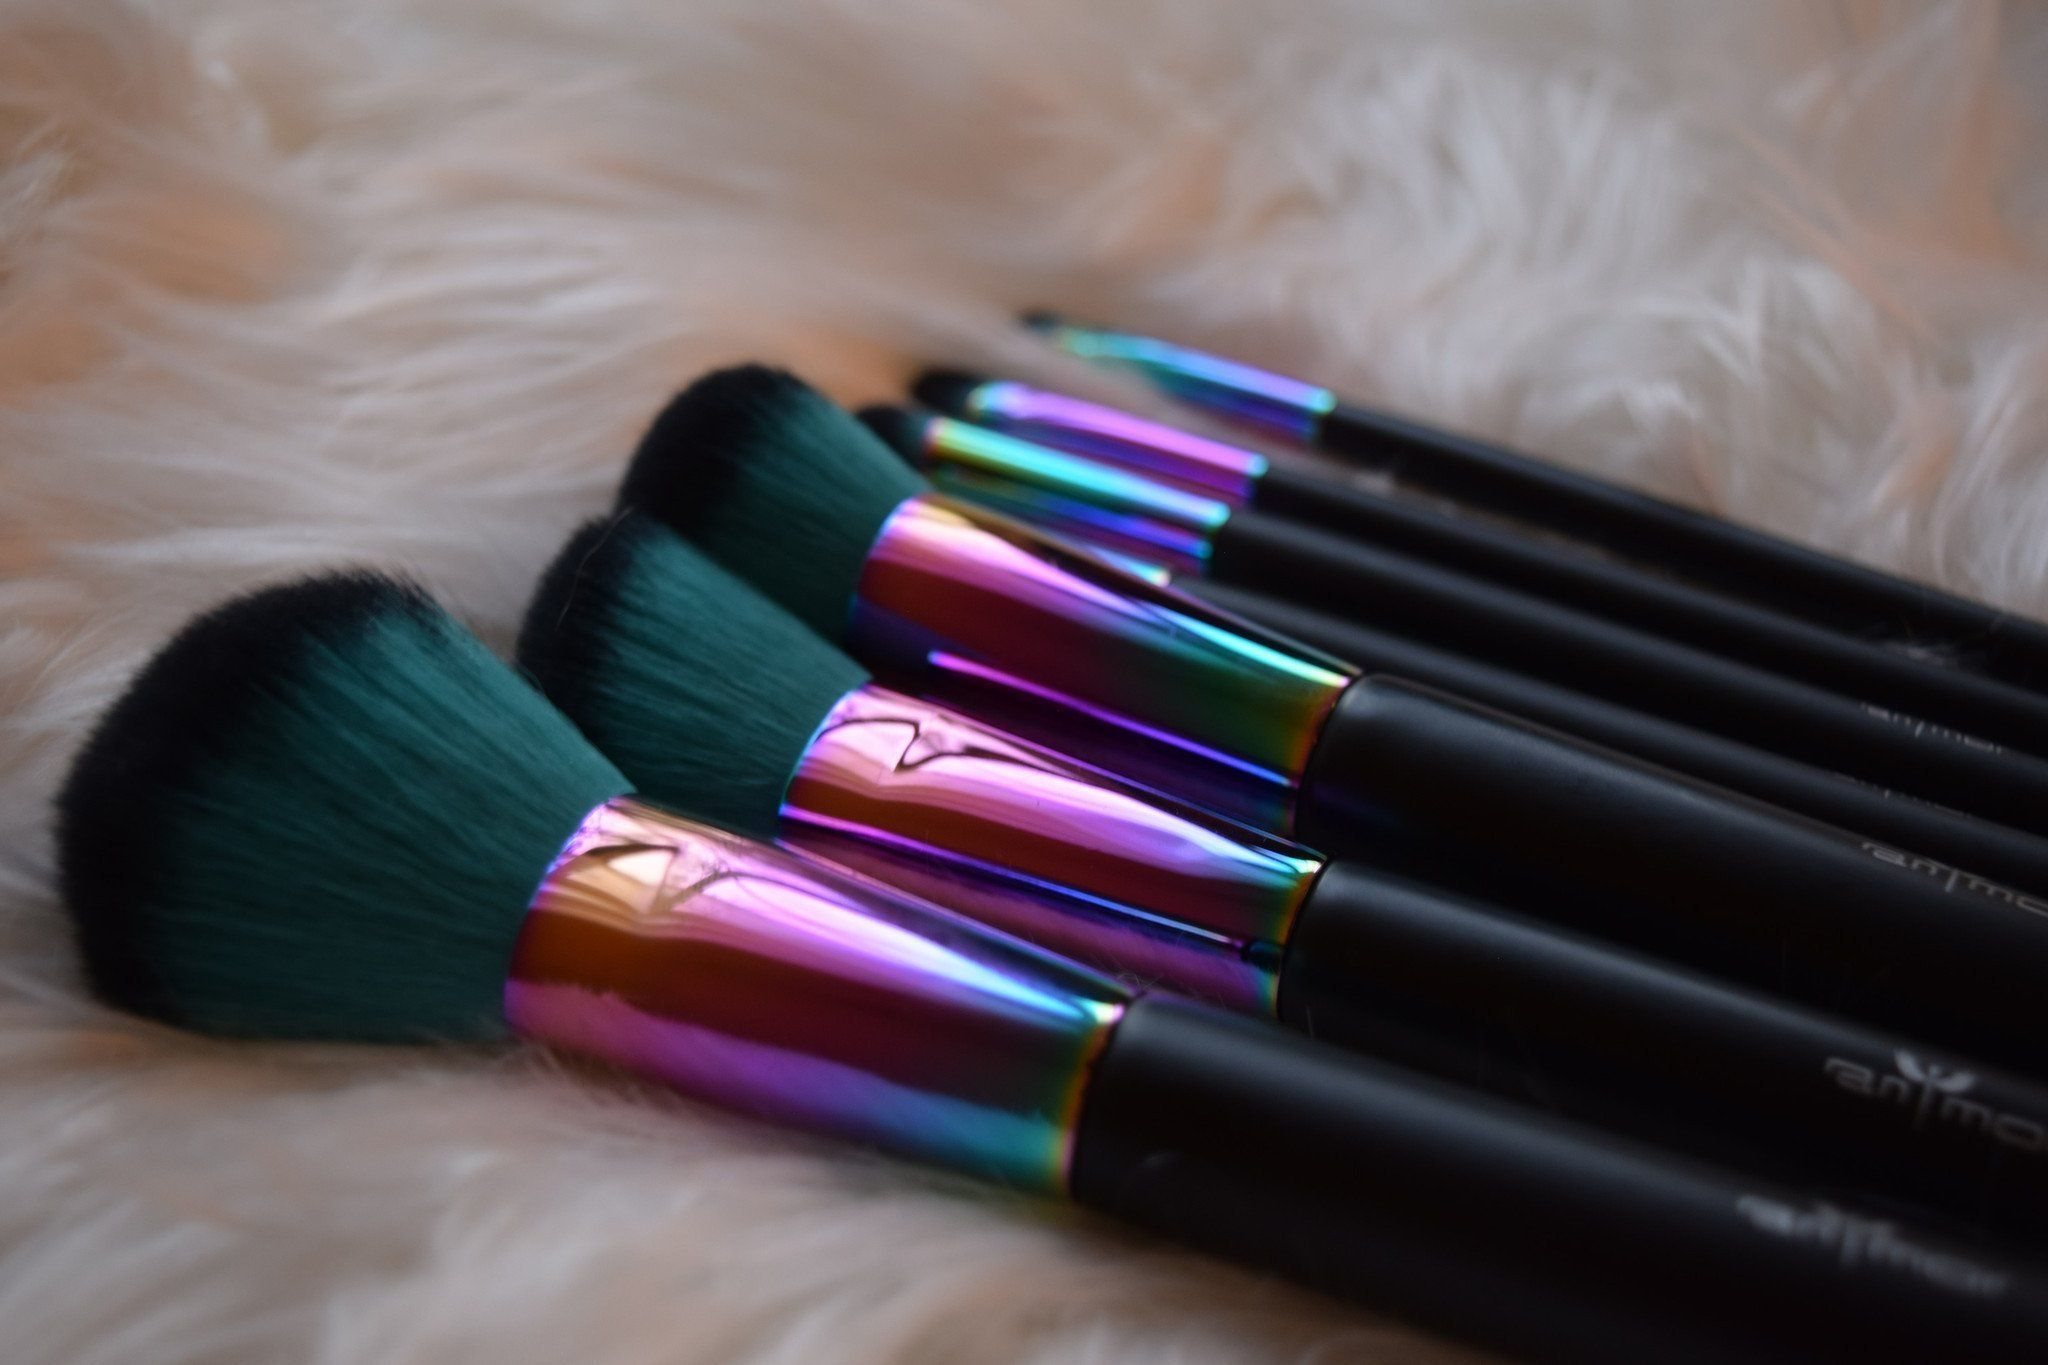 Prismatic Rainbow Makeup Brushes 7 Piece Set in 2020